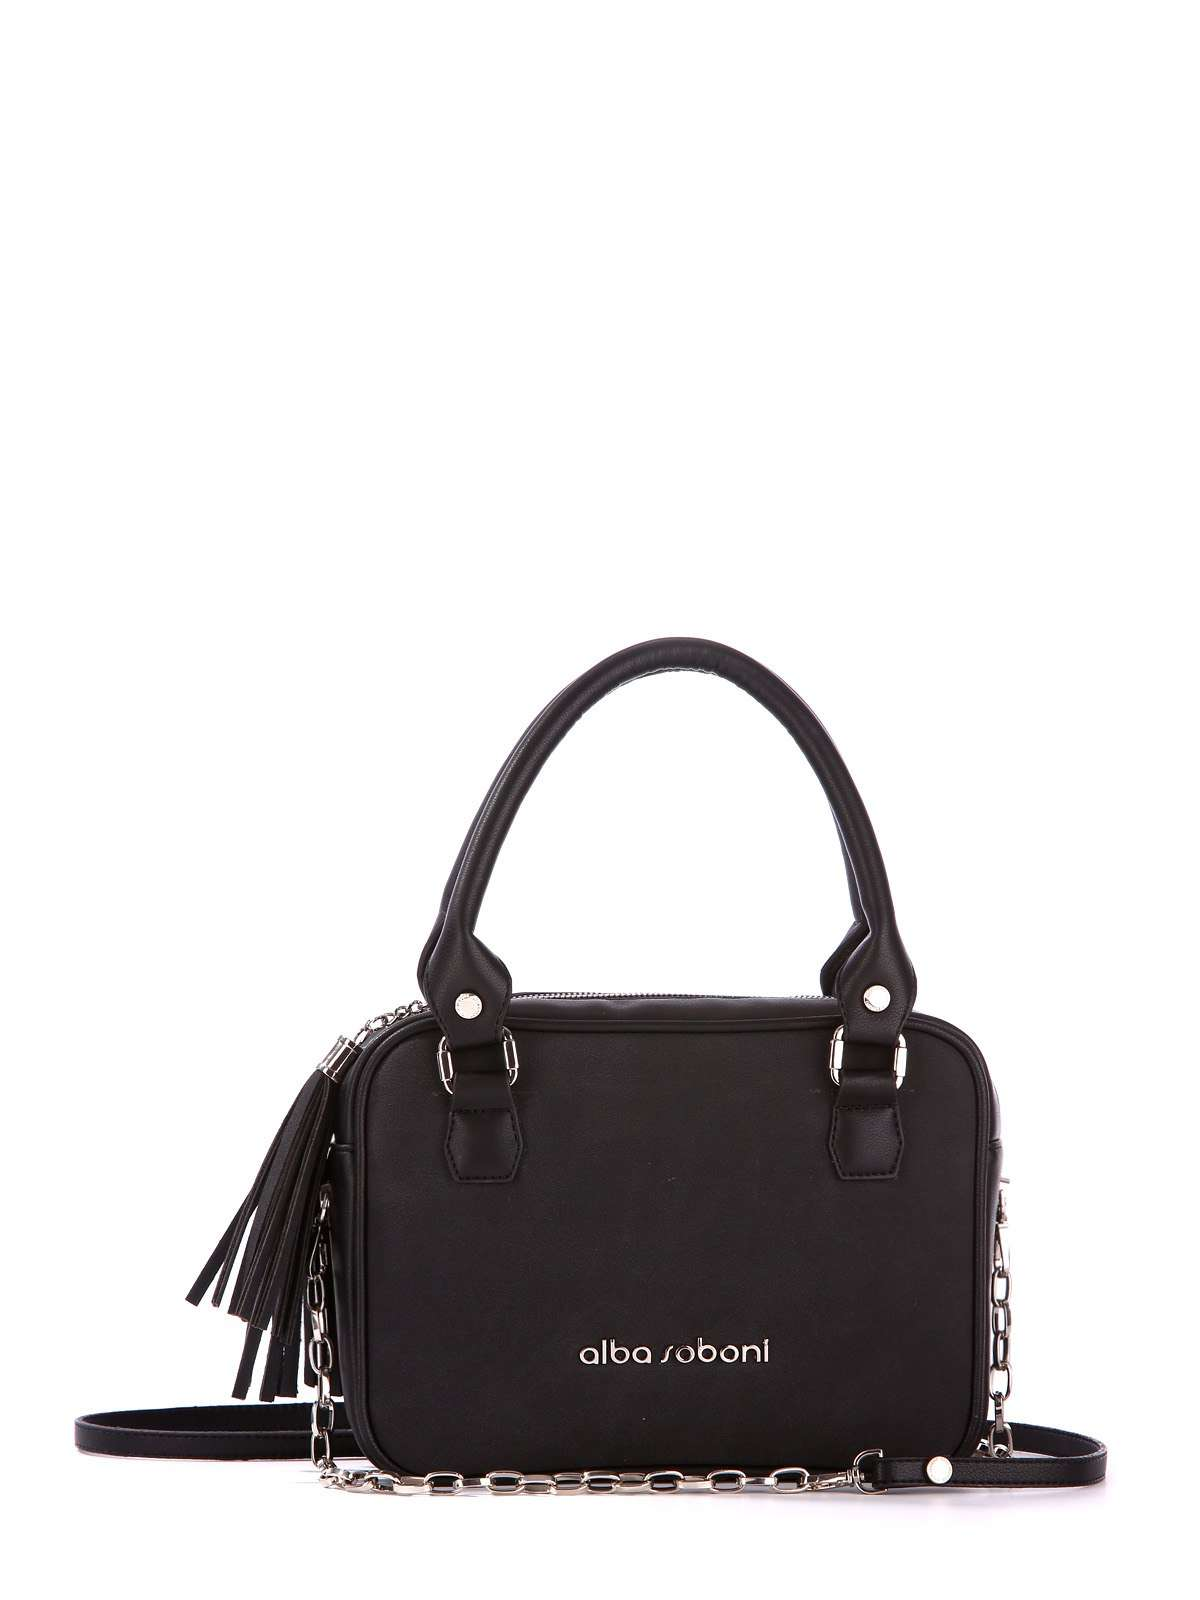 https://alba-soboni.ua/images/store/product-ru/autumn-winter-2017-bag-small-172977-black-1.jpg